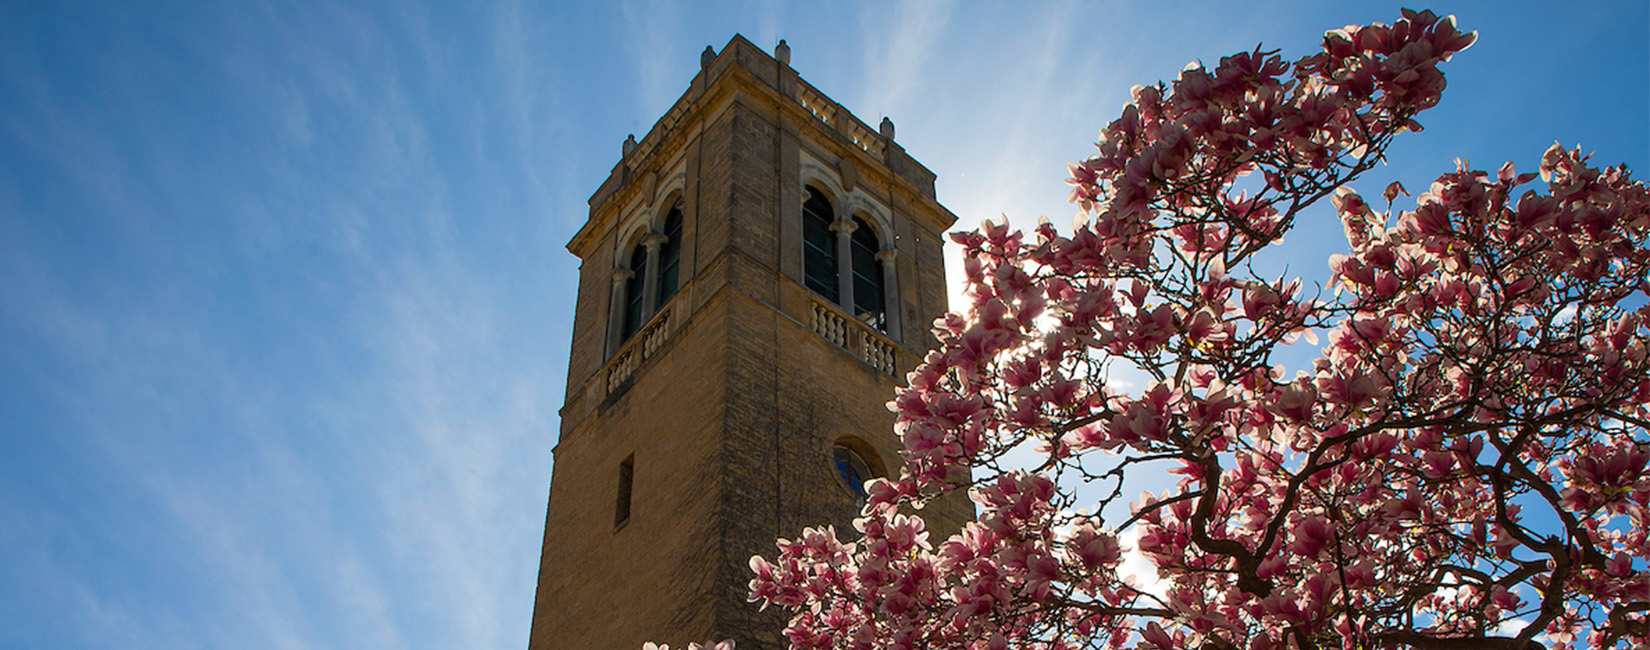 Tower at U of Wisconsin in spring time. Flowers and blue sky.